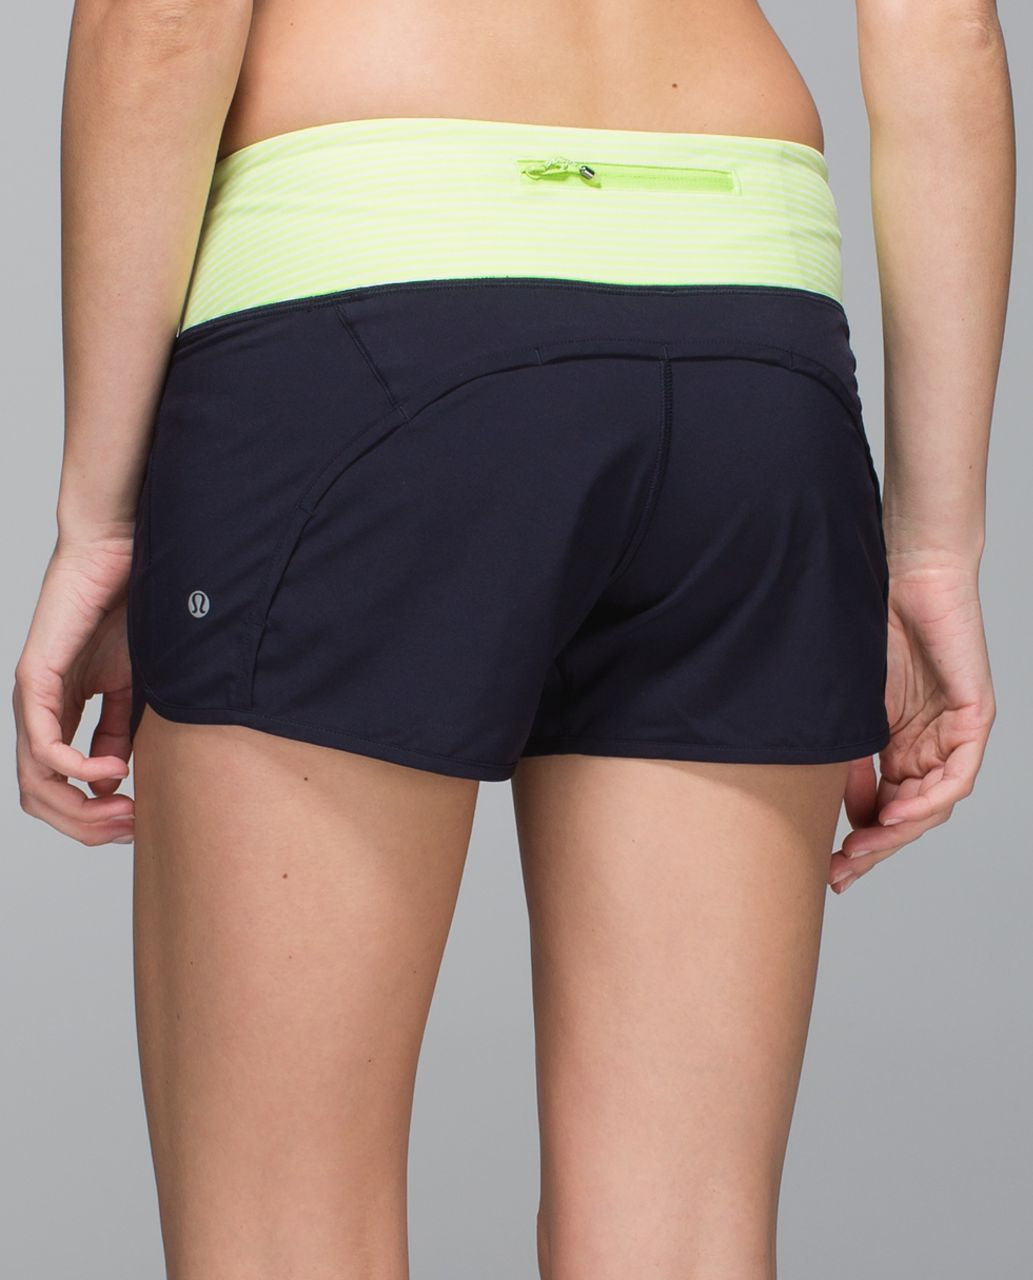 Lululemon Run Times Short *4-way Stretch - Naval Blue / Hyper Stripe Clear Mint Zest